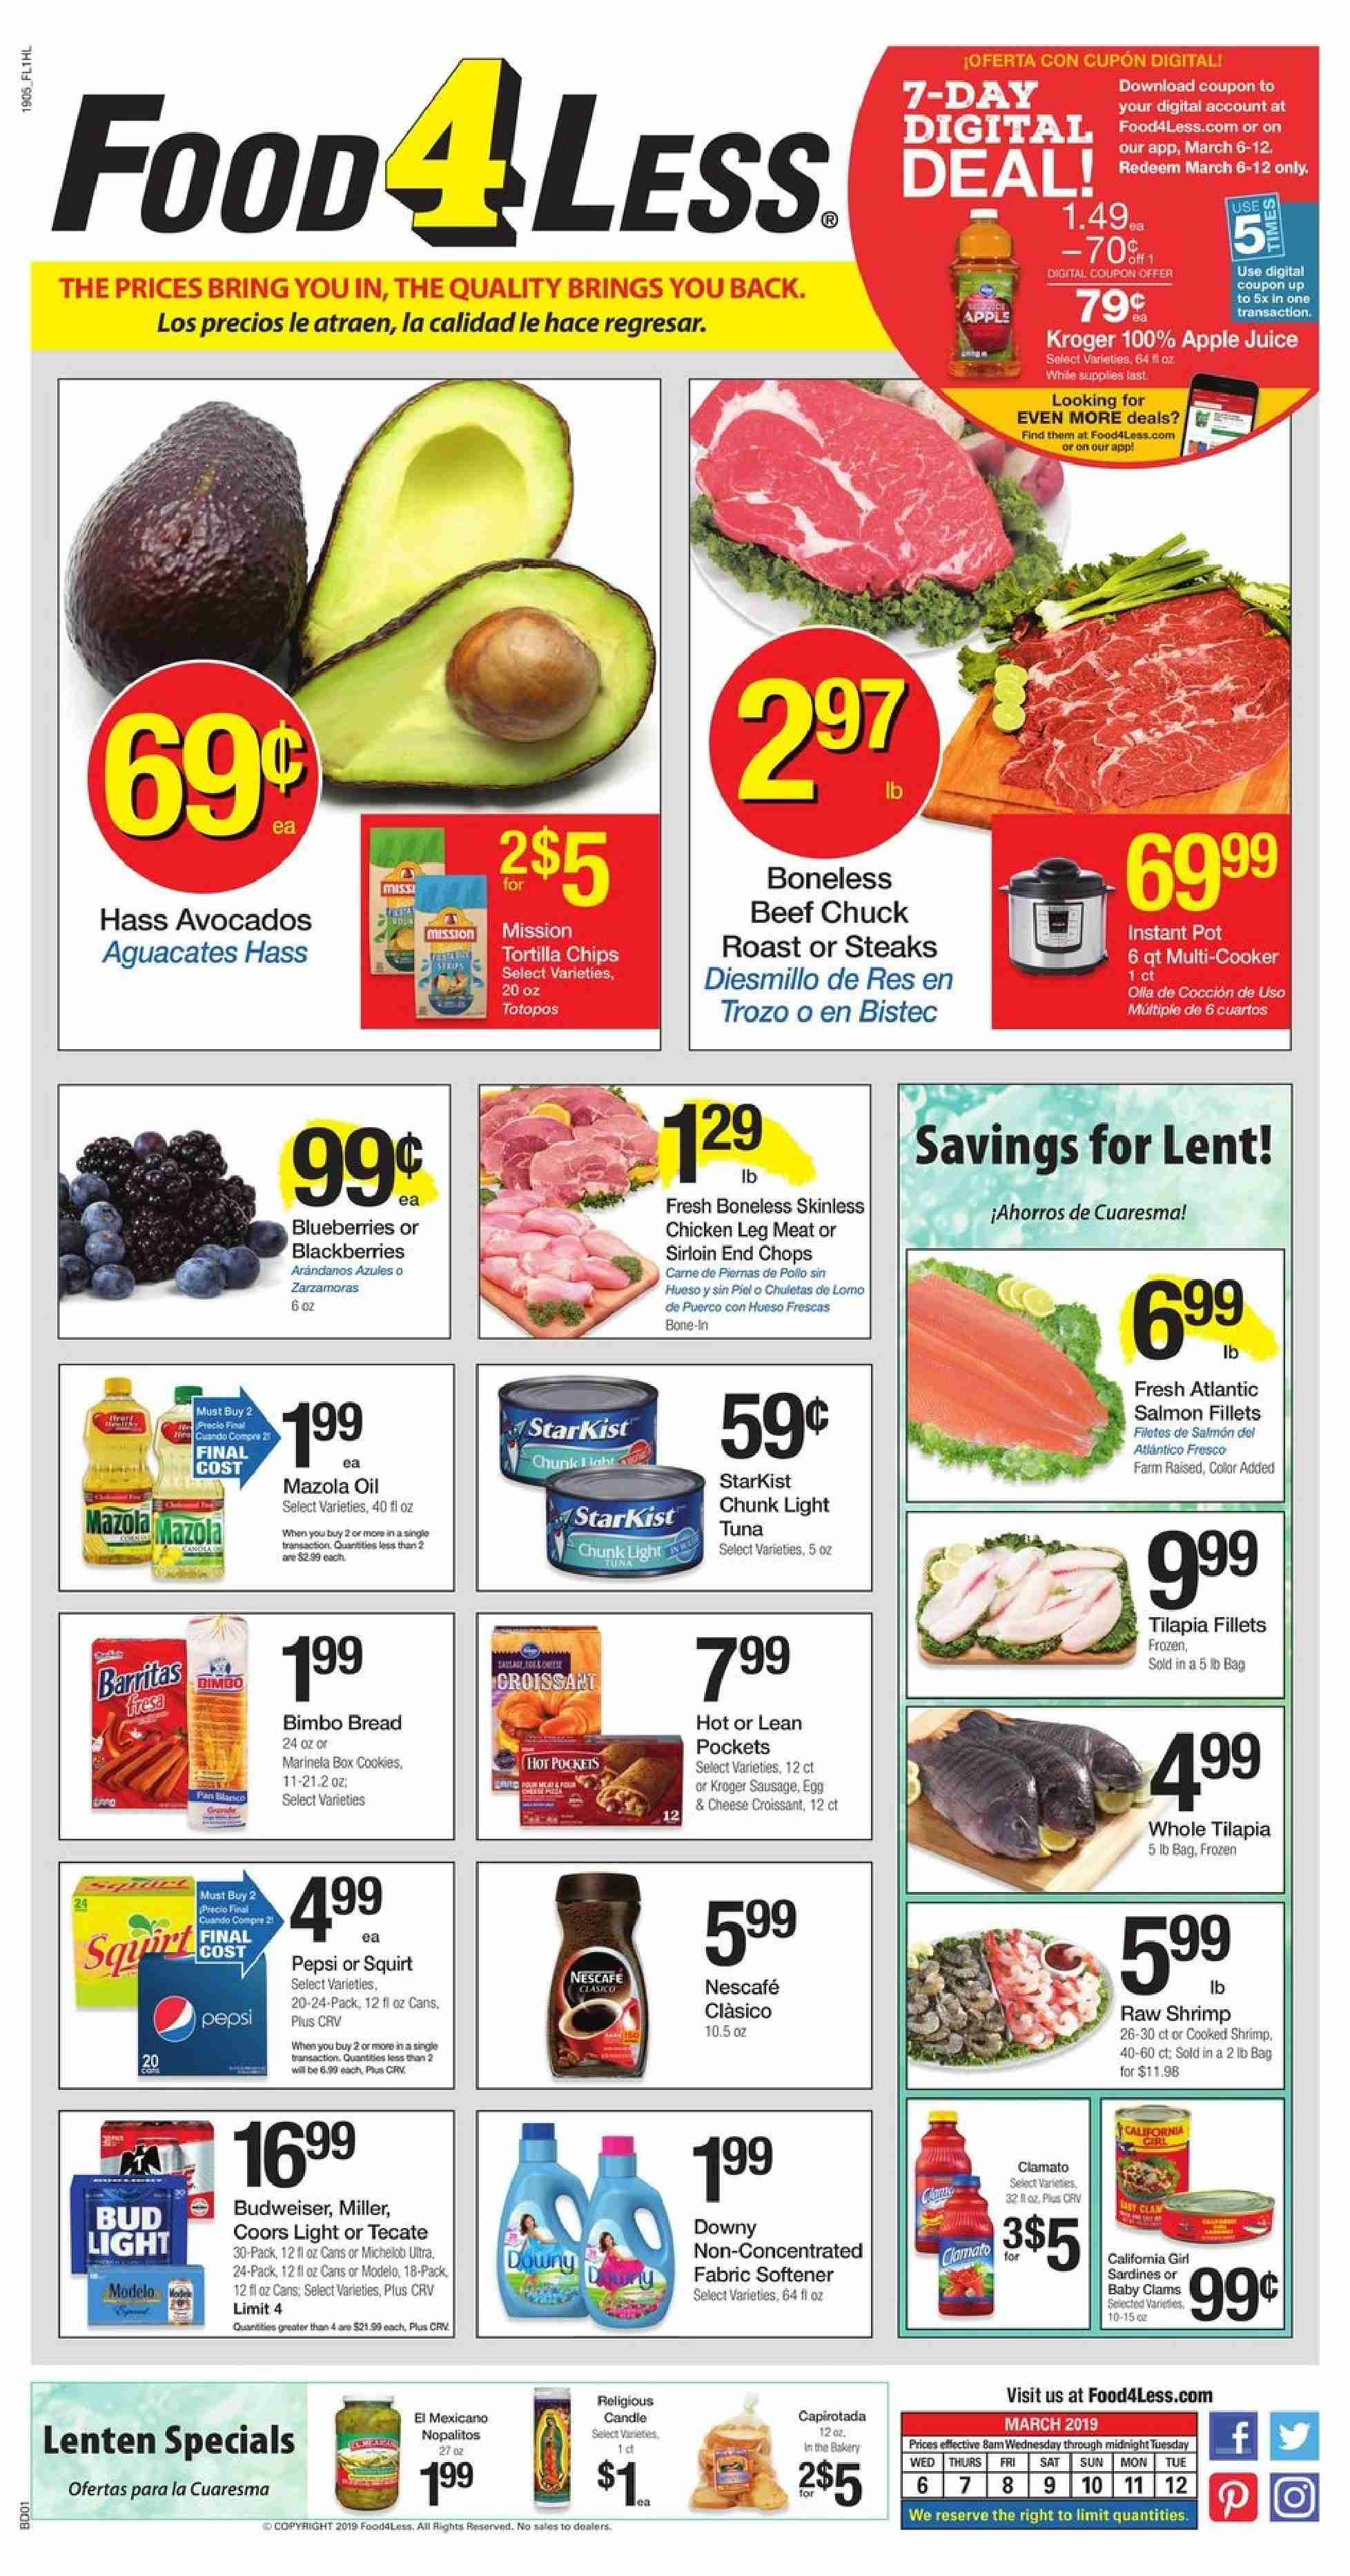 Food 4 Less Flyer - 03.06.2019 - 03.12.2019 - Sales products - Budweiser, Coors, Michelob, avocado, blackberries, blueberries, Apple, bread, clams, salmon, tilapia, tuna, shrimps, sausage, cheese, eggs, cookies, tortilla chips, chips, oil, apple juice, juice, Nescafé, chicken, beef meat, Downy, softener, pot, box, Frozen. Page 1.